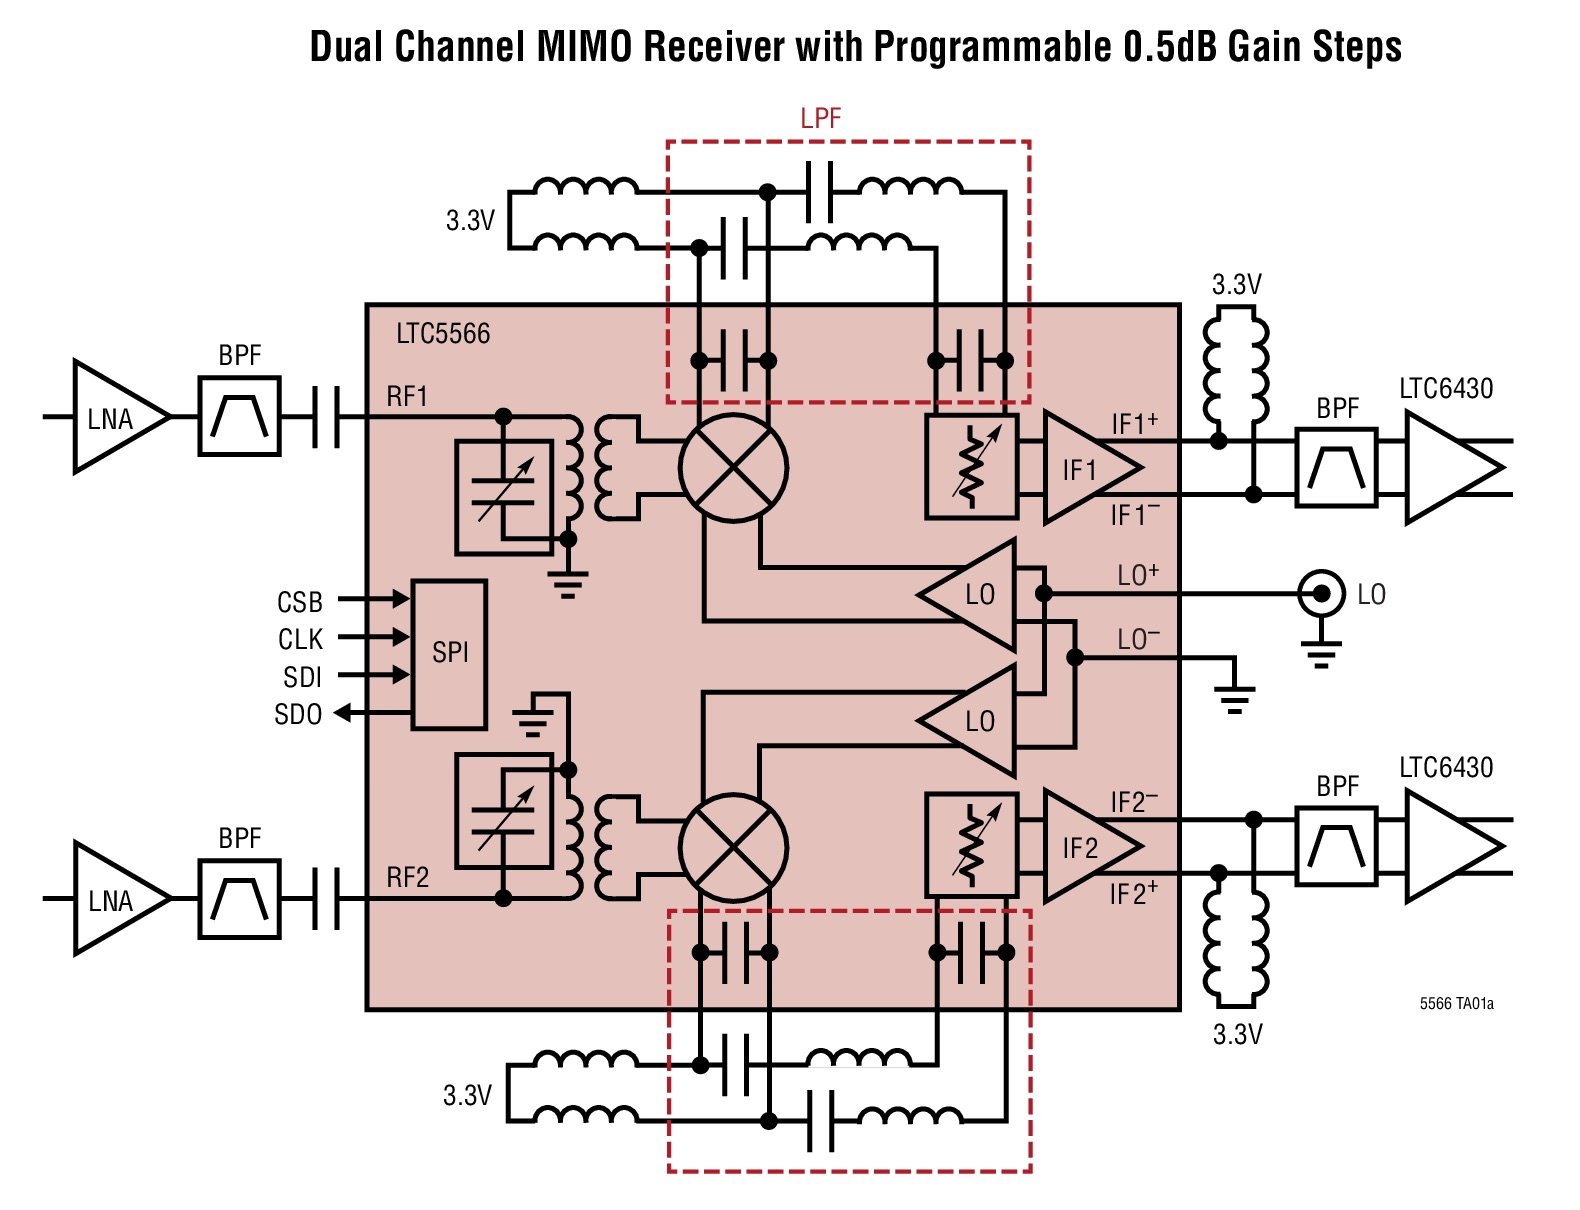 Channel mixer IC is tuned for 4G and 5G frequencies